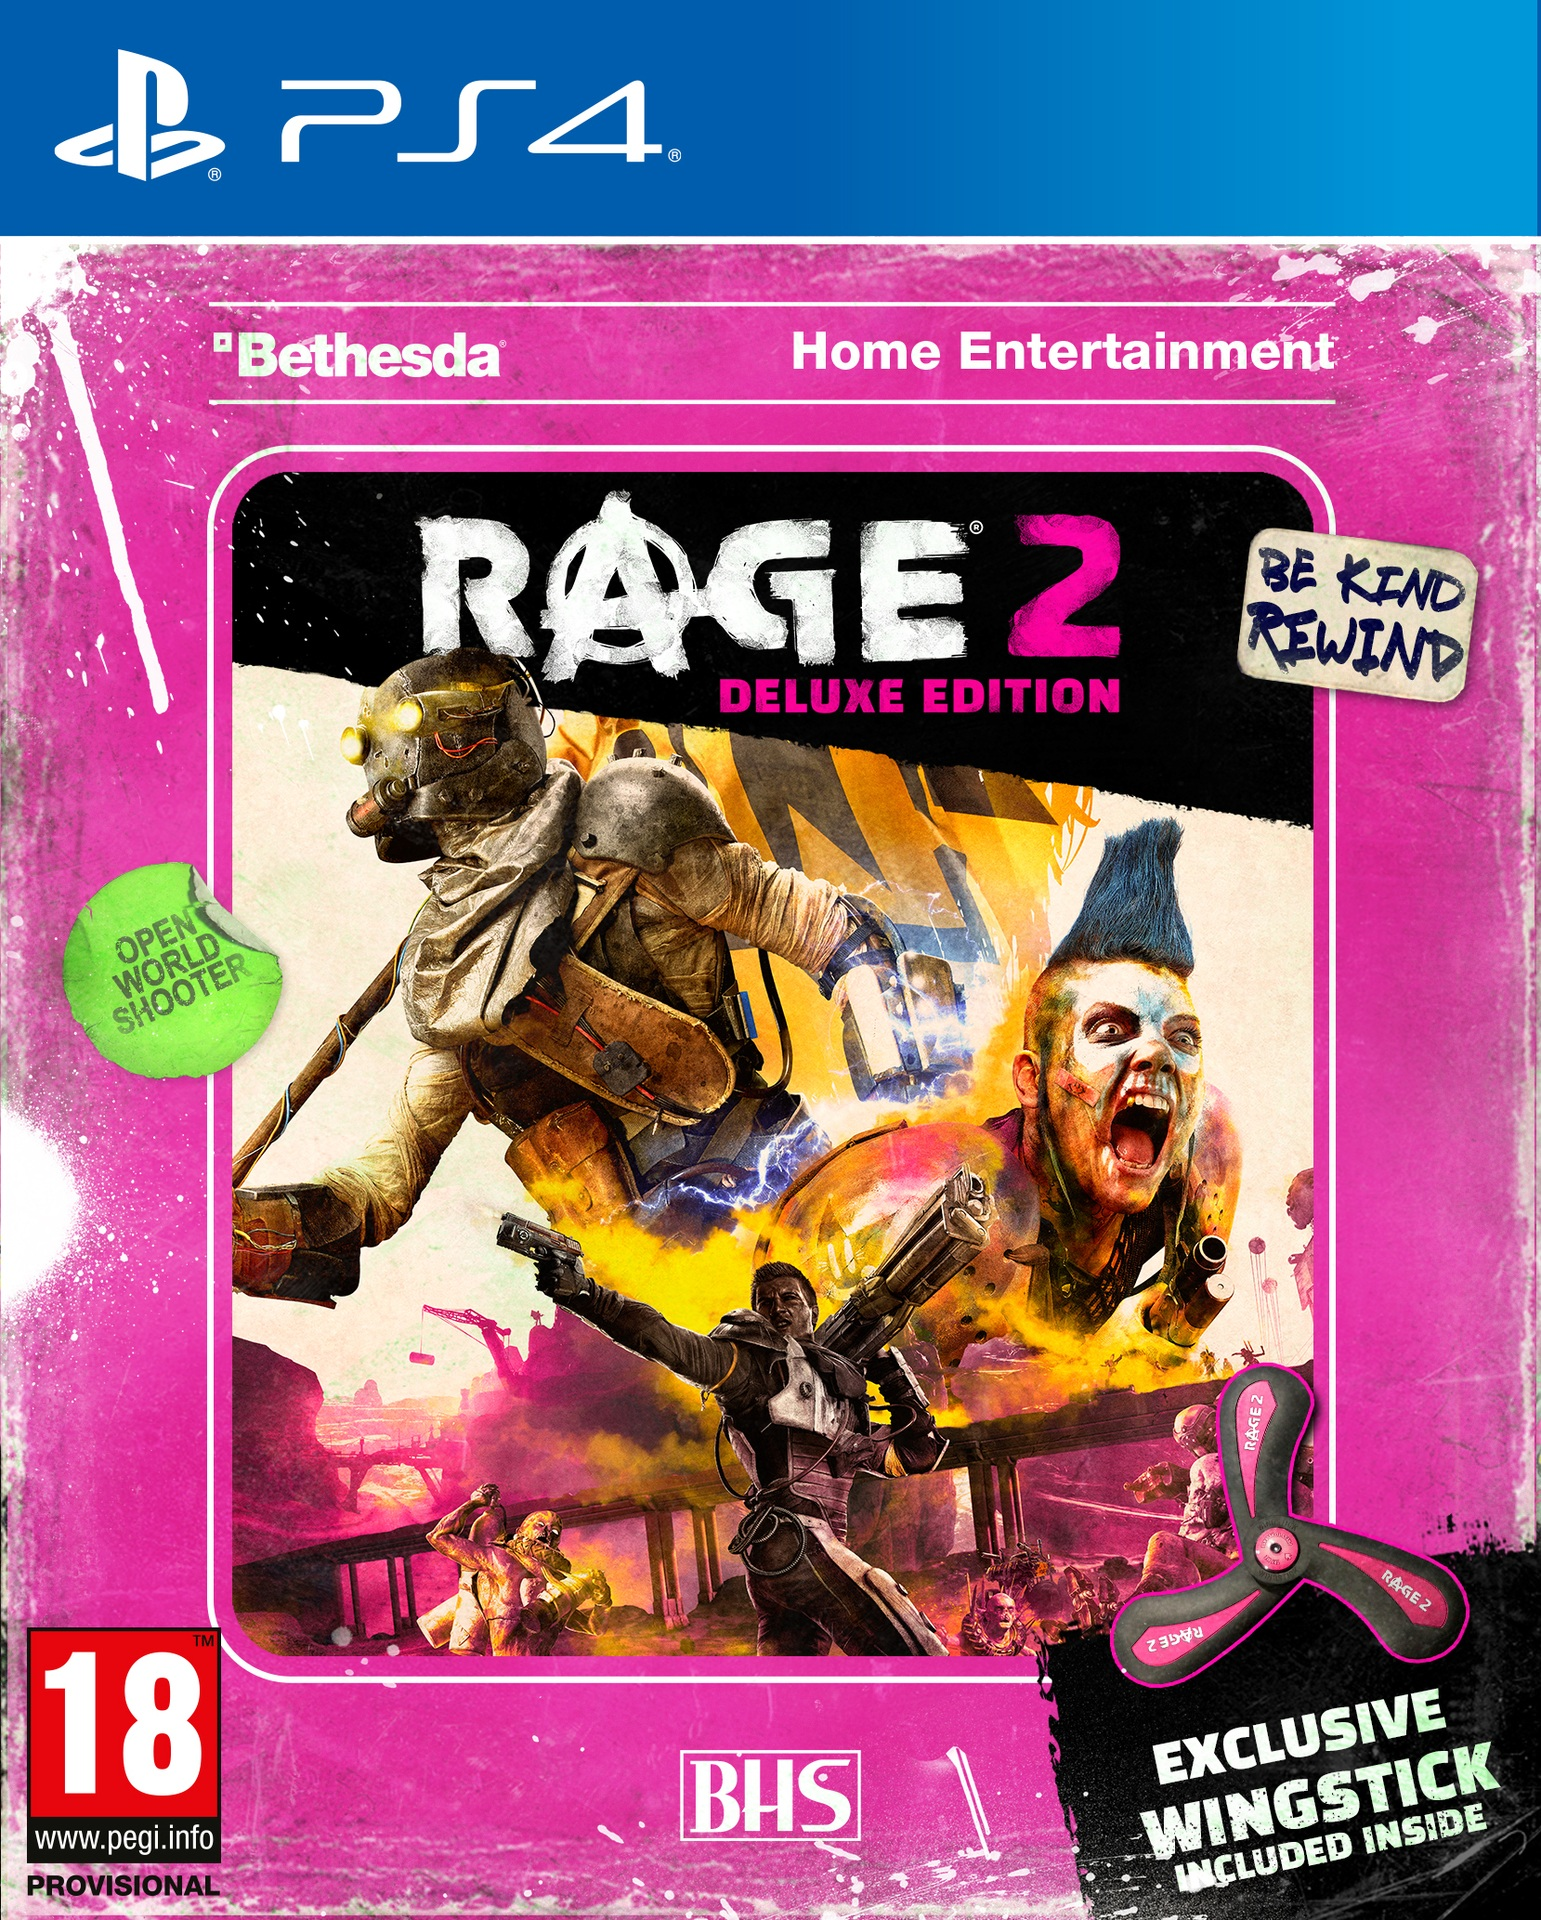 RAGE 2 - Wingstick Deluxe Edition (PS4)